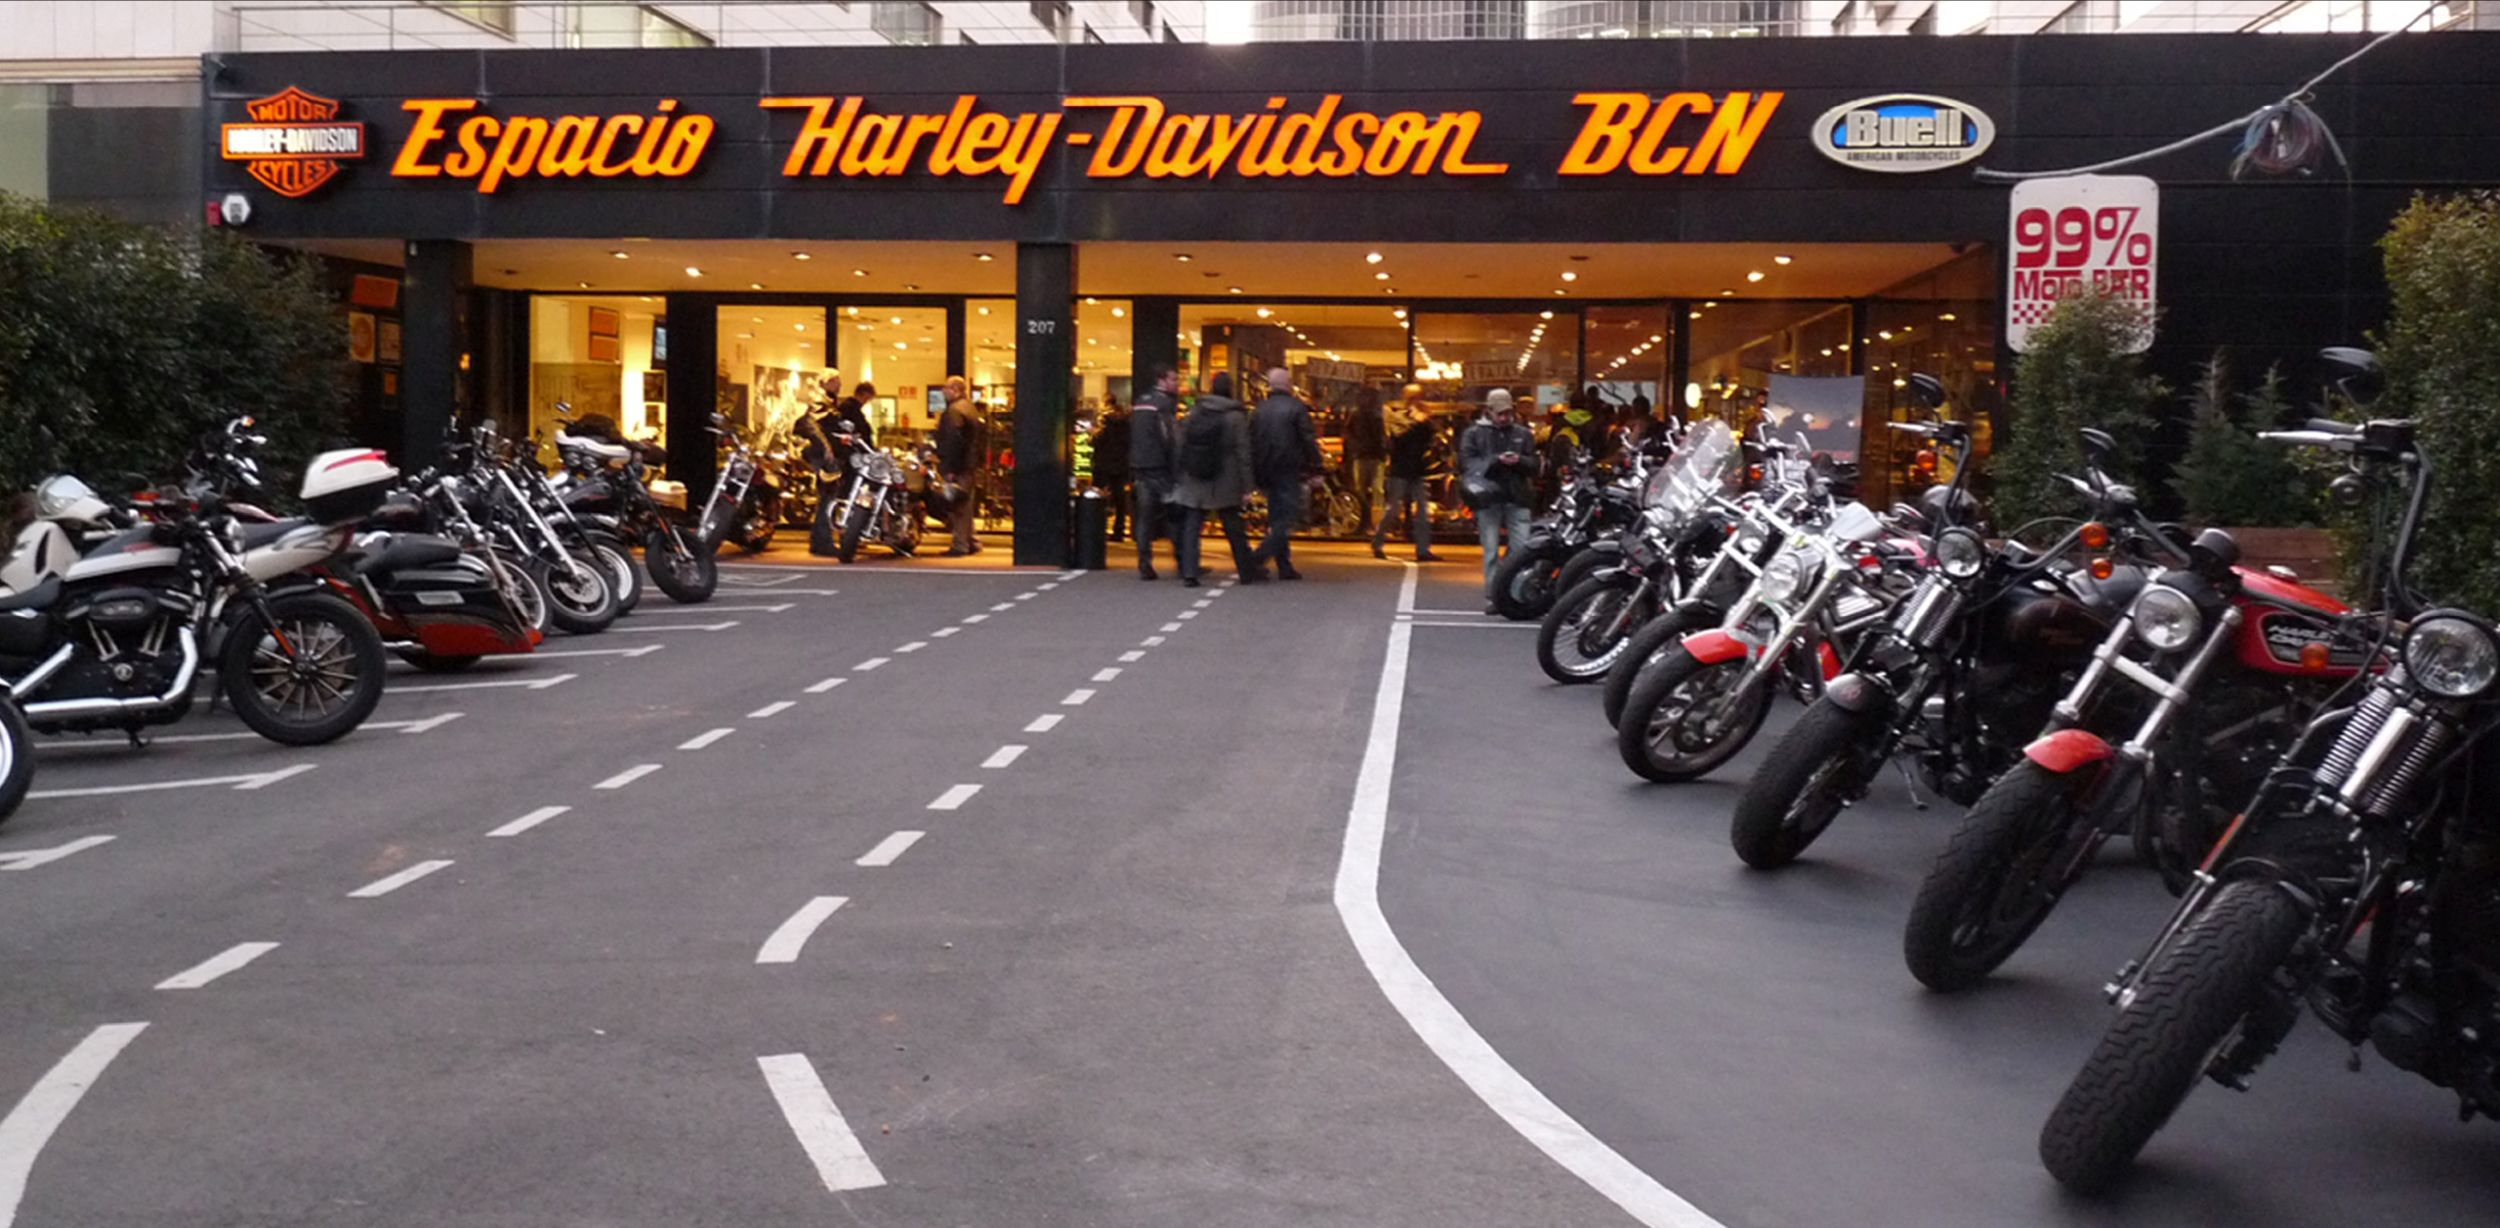 espacio harley davidson bcn concesionario oficial espacio h d. Black Bedroom Furniture Sets. Home Design Ideas